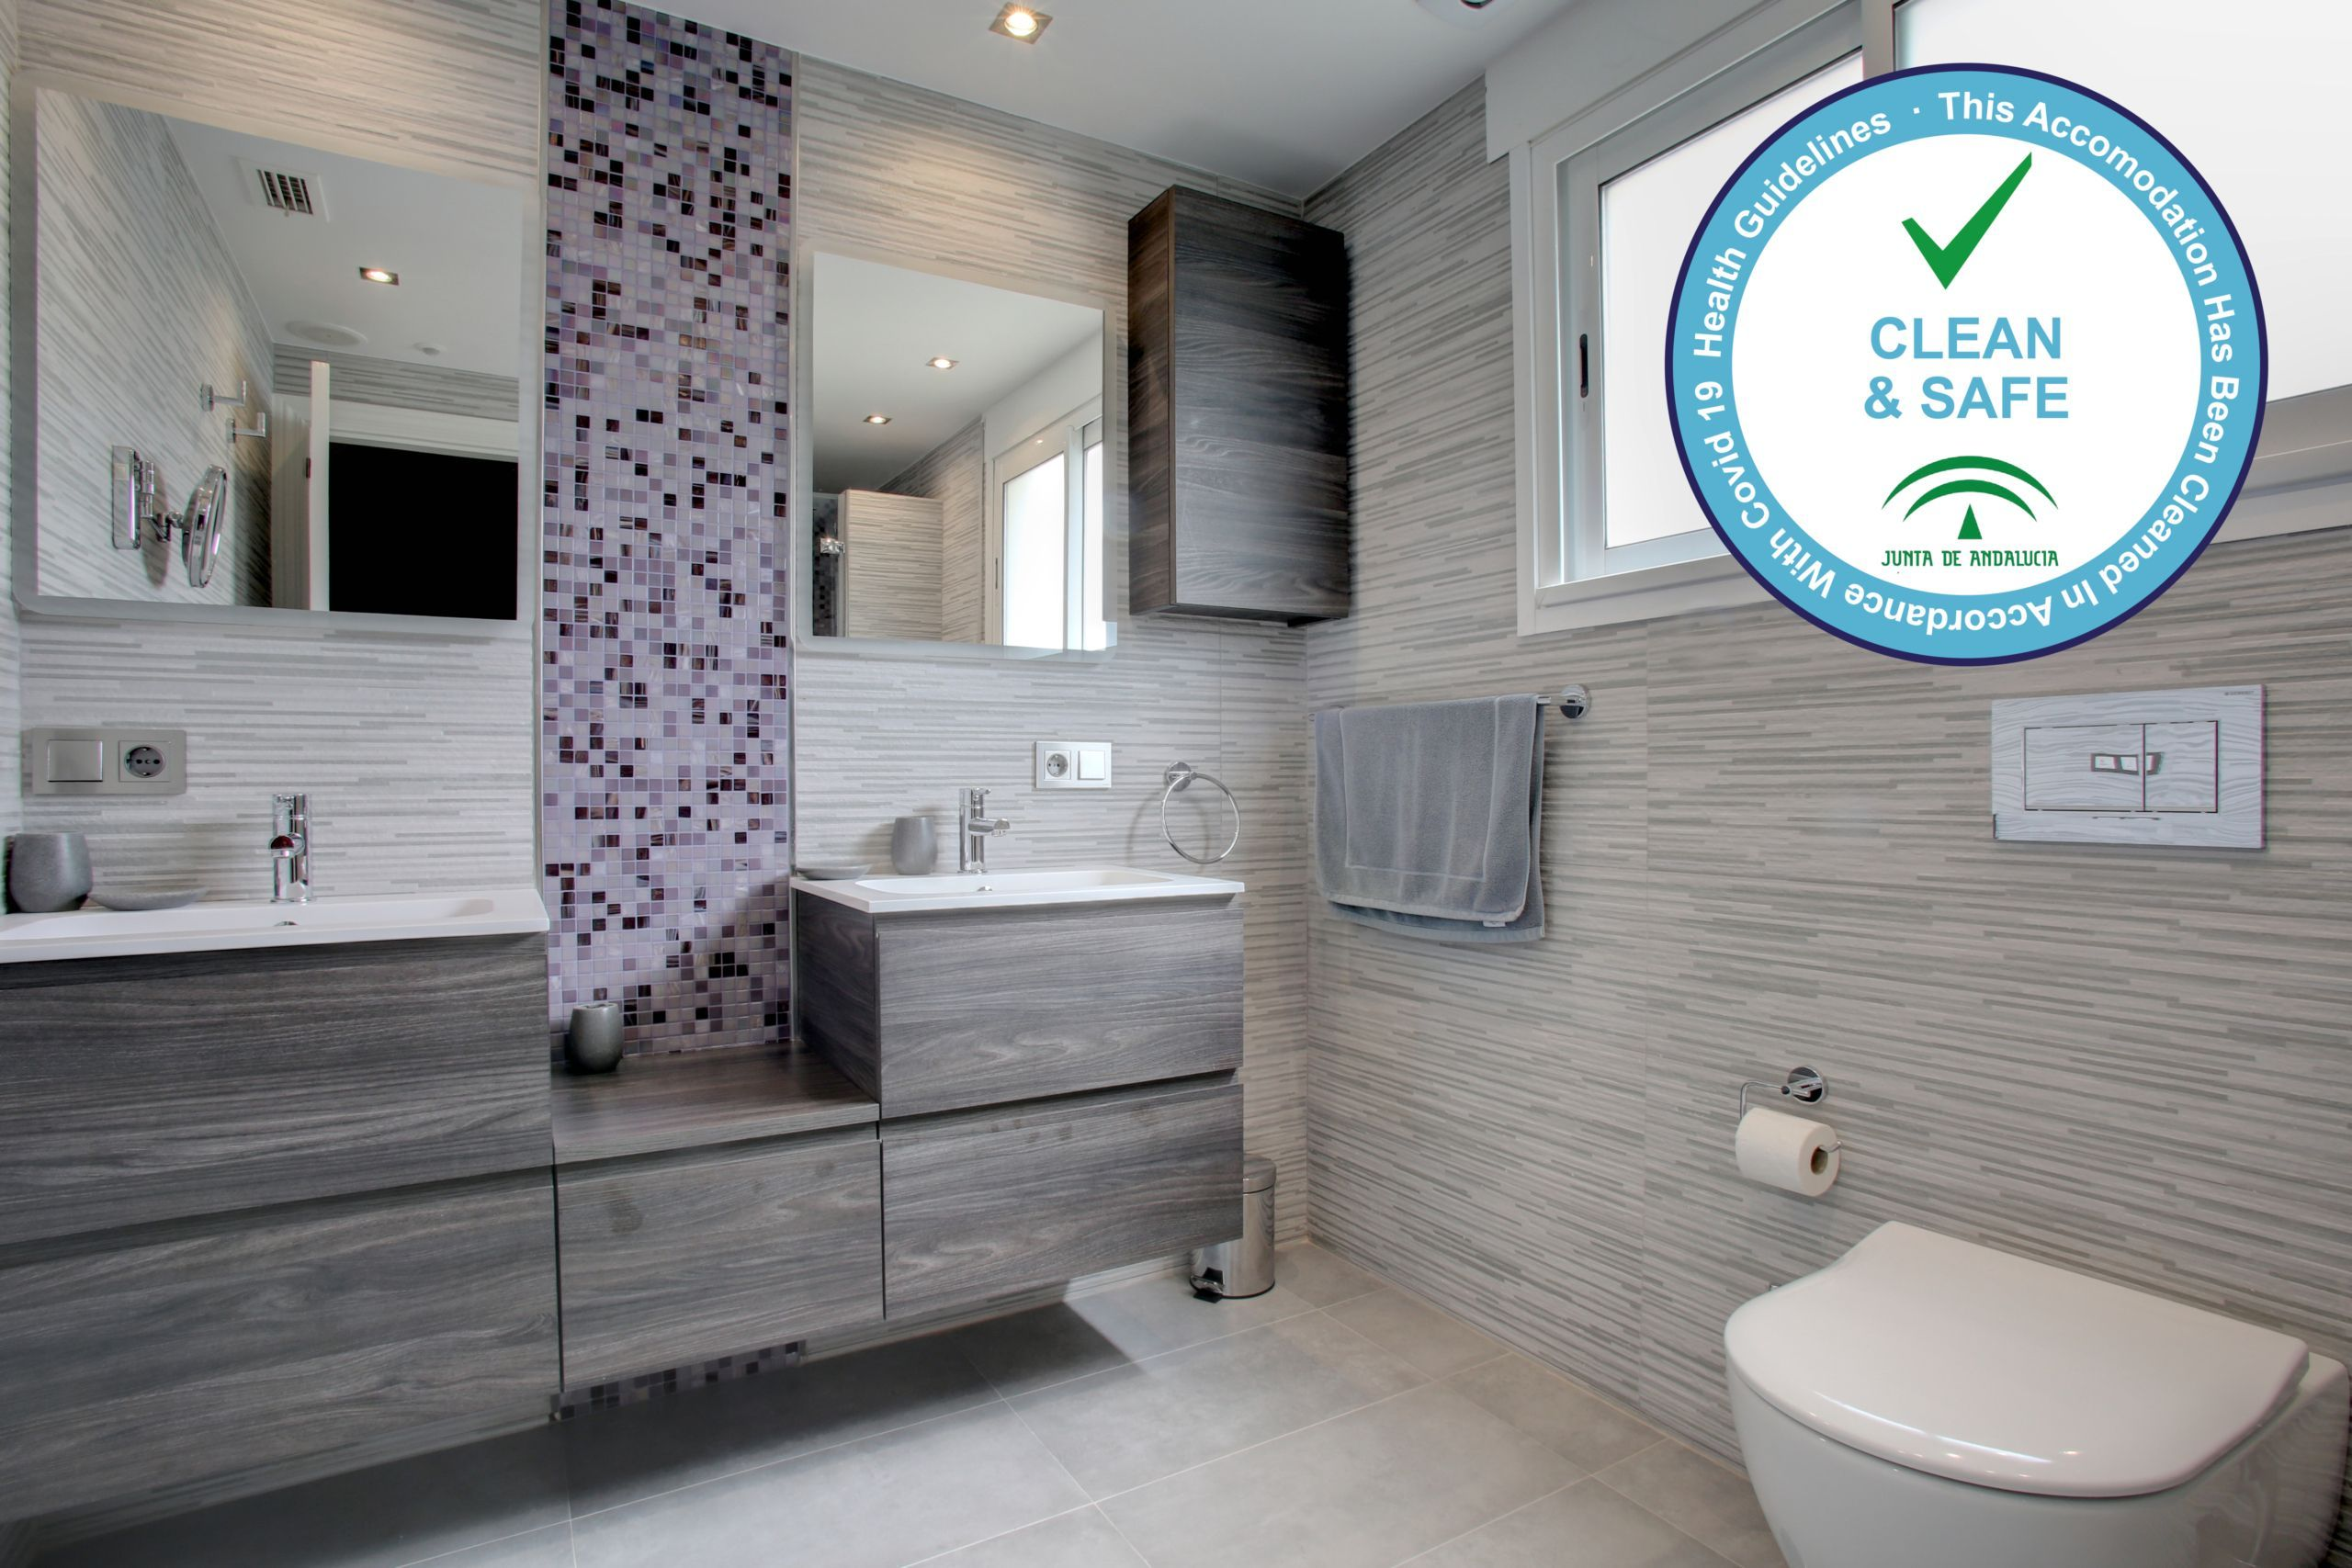 Safe and Clean Holiday Homes during Covid-19